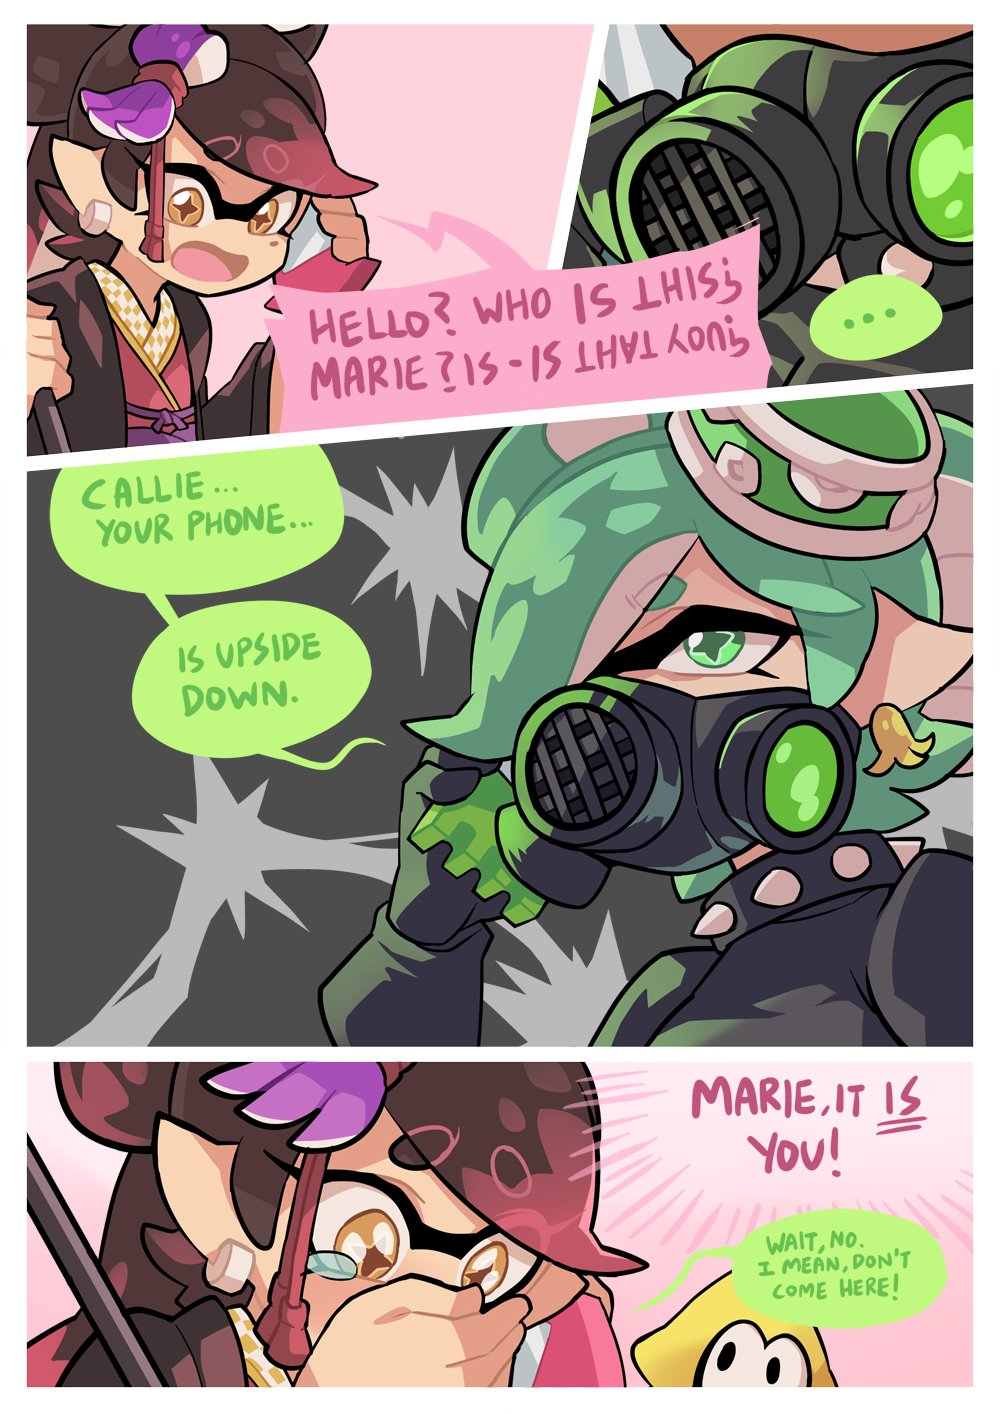 +_+ 3girls aori_(splatoon) collar commentary cousins domino_mask earrings english_text food food_on_head gas_mask gloves green_eyes green_hair highres holding holding_umbrella hotaru_(splatoon) japanese_clothes jewelry kimono layered_clothing layered_kimono long_hair long_sleeves mask mole mole_under_eye multiple_girls obi object_on_head open_mouth oriental_umbrella pointy_ears role_reversal sash short_hair spiked_collar spikes splatoon splatoon_(series) splatoon_2 squid squidbeak_splatoon standing sushi tentacle_hair umbrella wong_ying_chee